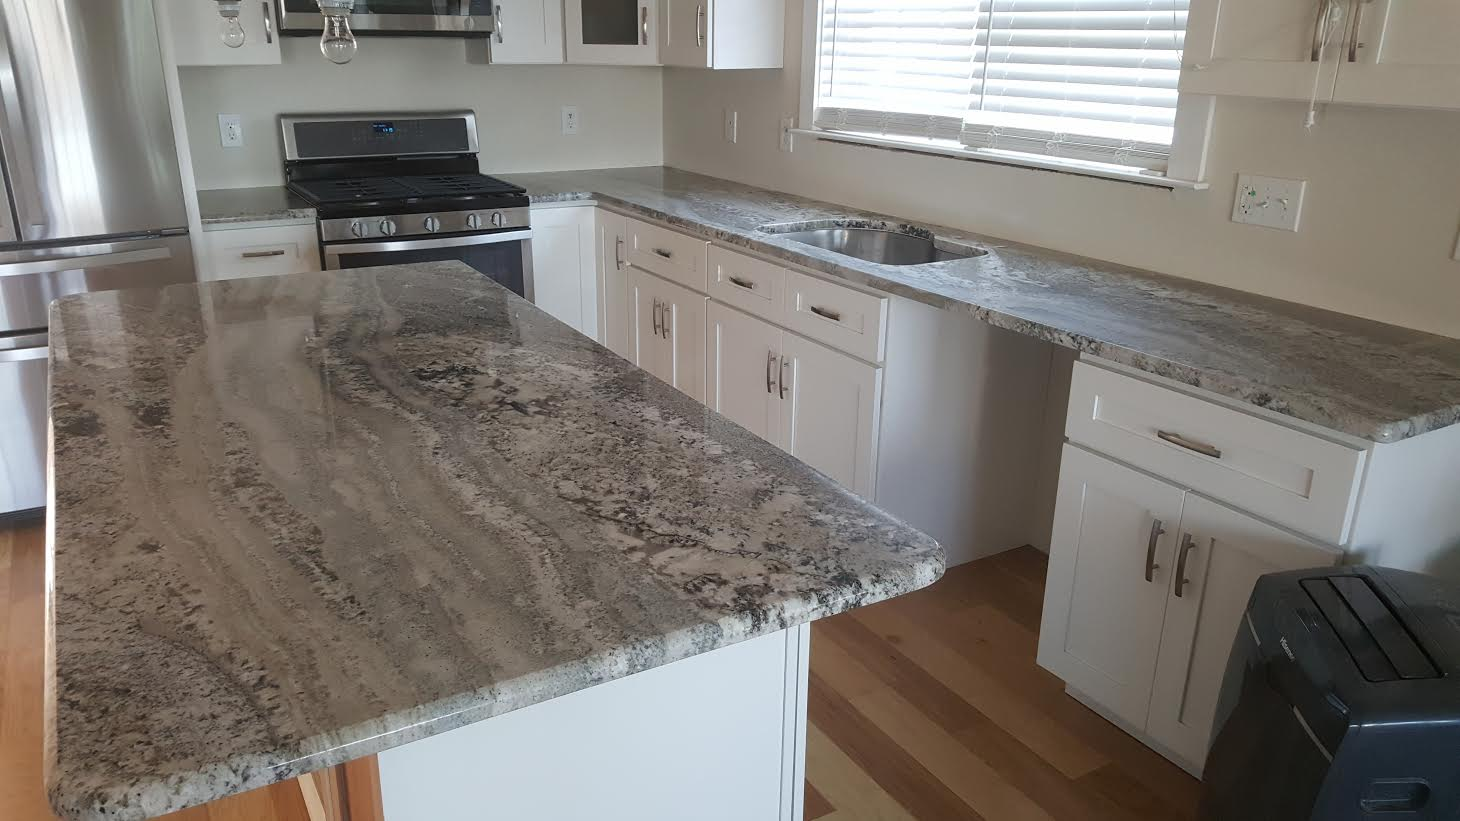 Our Countertop Services Are Some Of The Best In State For Service Forked River Toms Ocean County Or Any Surrounding Areas Call Take Us